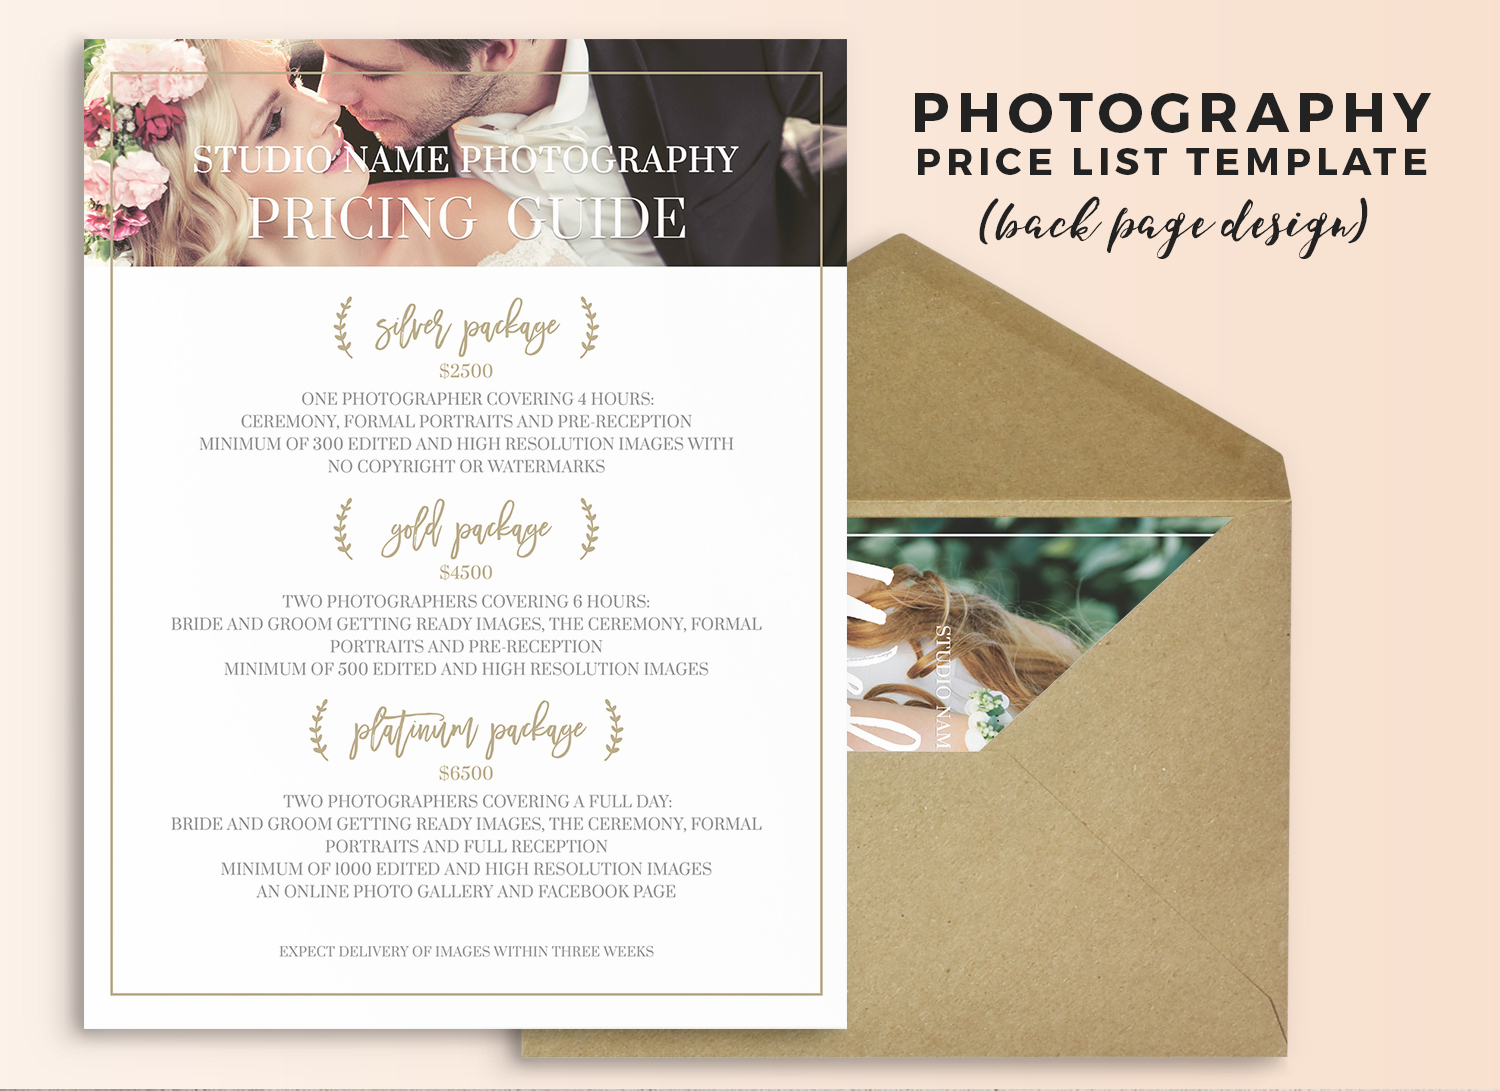 Wedding Photography Price List Photoshop Template On Behance  Price Sheet Template